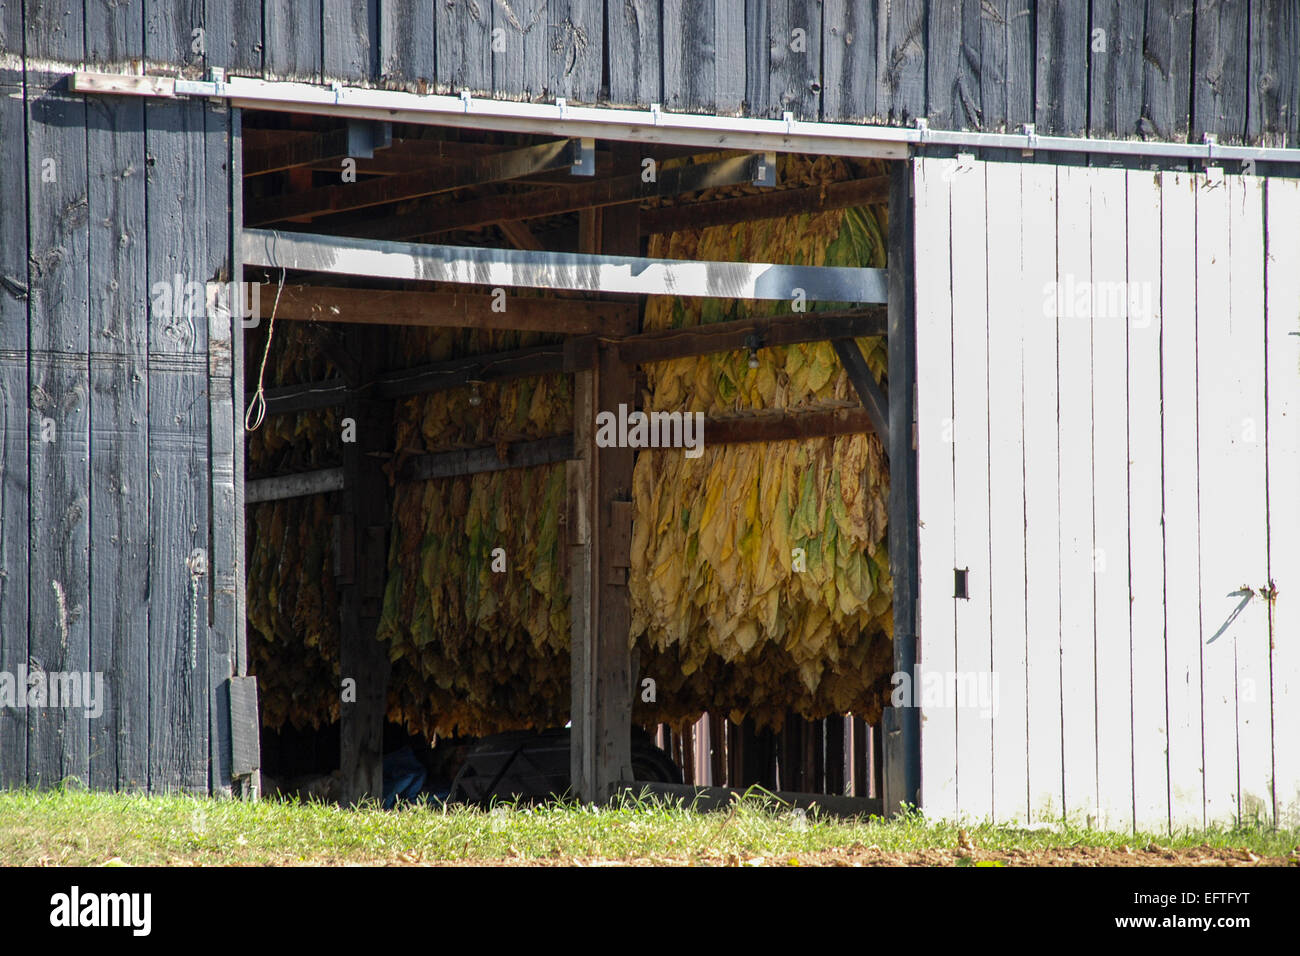 Old tobacco barn in Northern Kentucky.  There are tobacco leaves inside the barn drying. - Stock Image